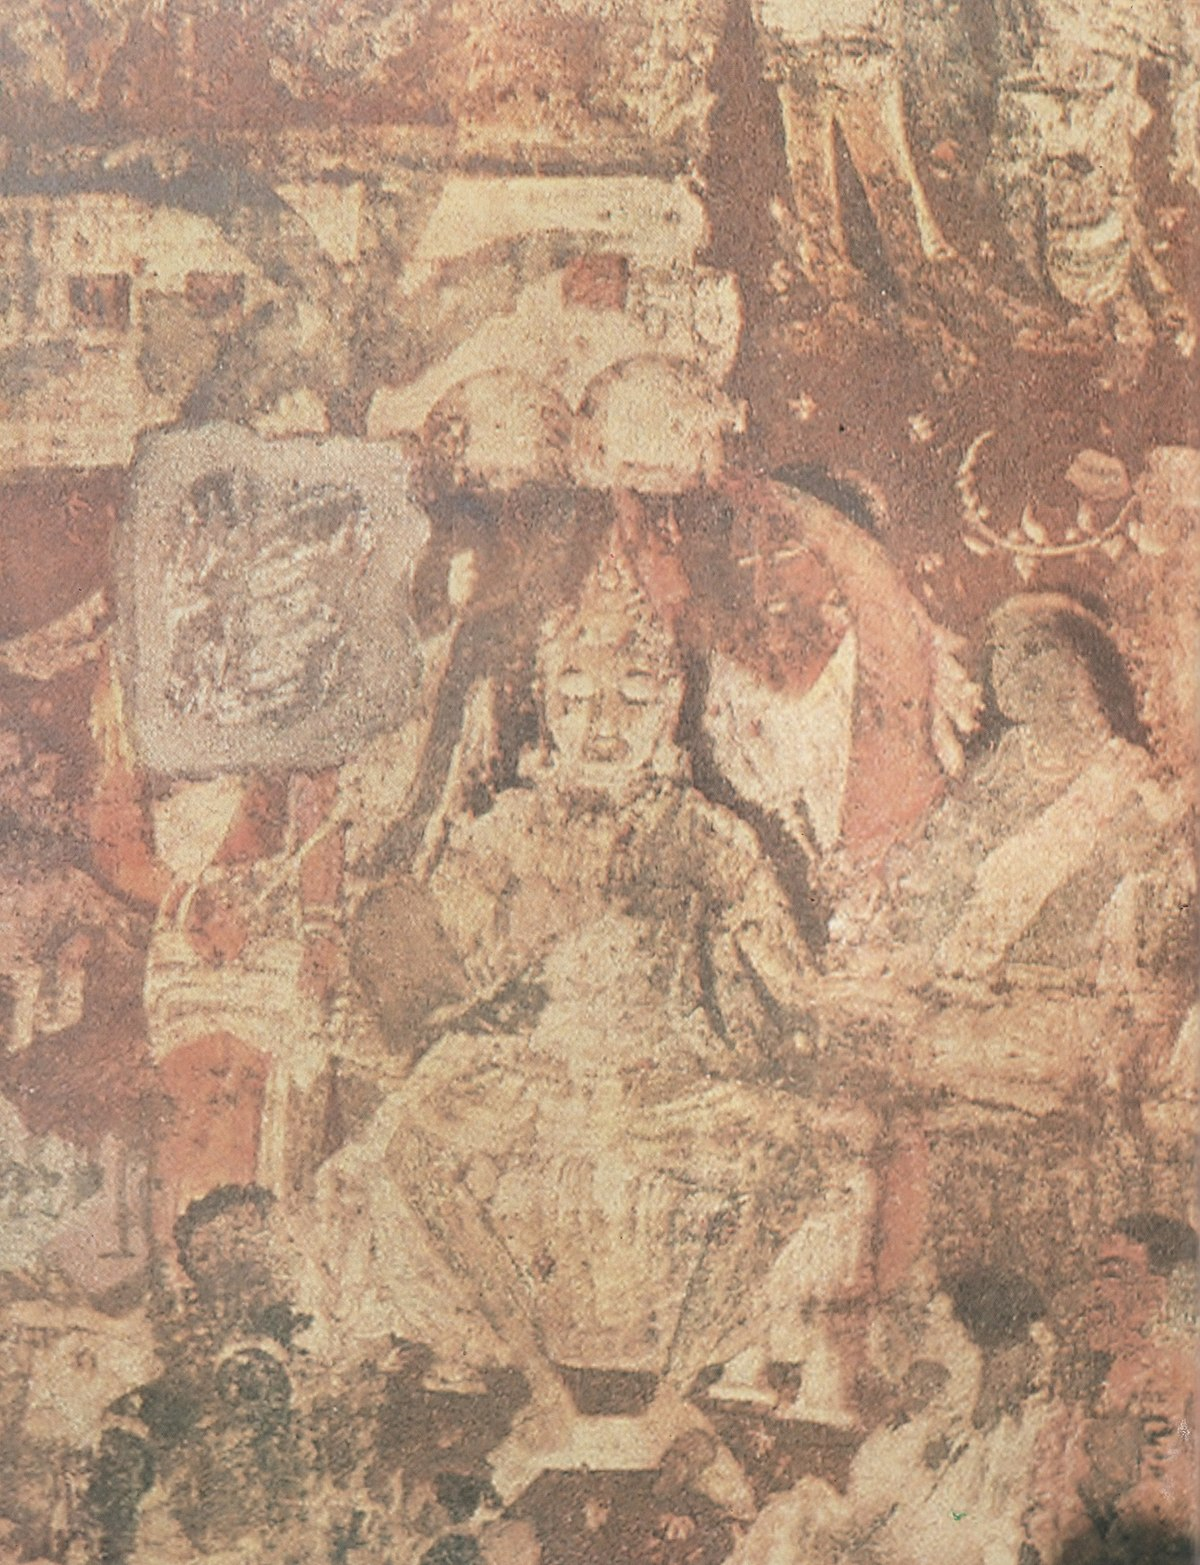 Prince vijaya wikipedia for Ajanta mural painting